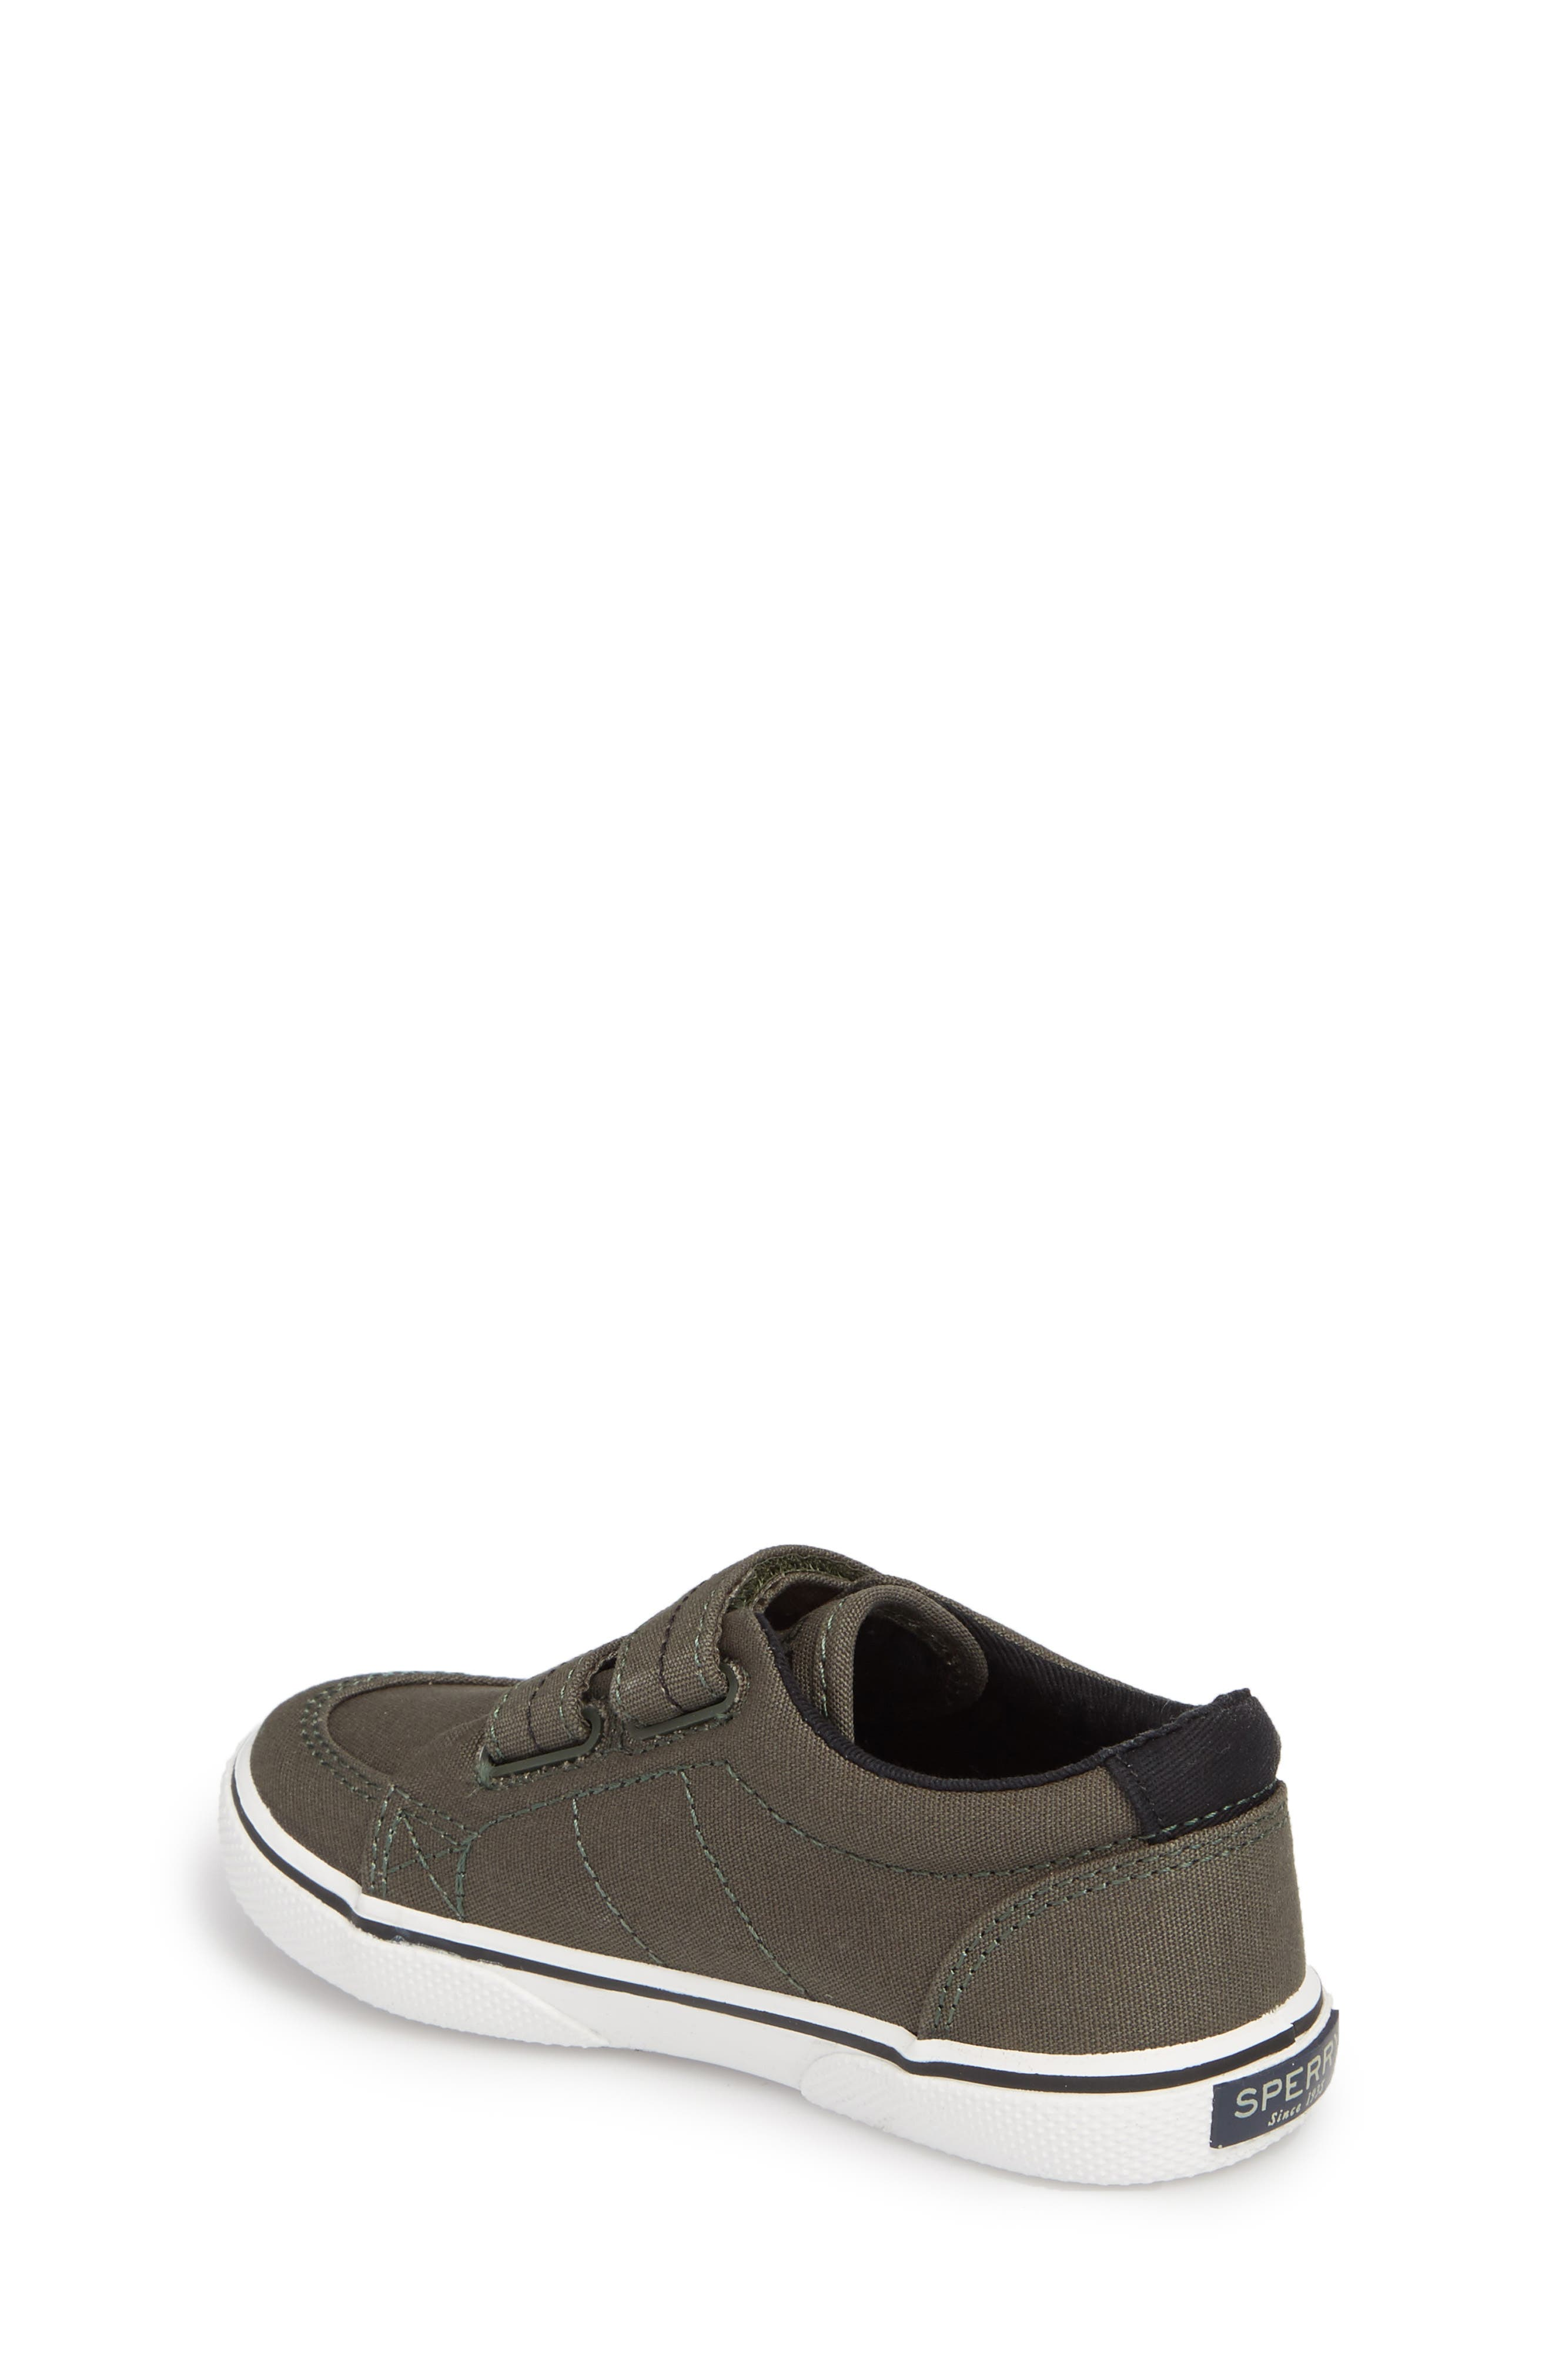 Sperry Top-Sider<sup>®</sup> Kids 'Halyard' Sneaker,                             Alternate thumbnail 2, color,                             Olive